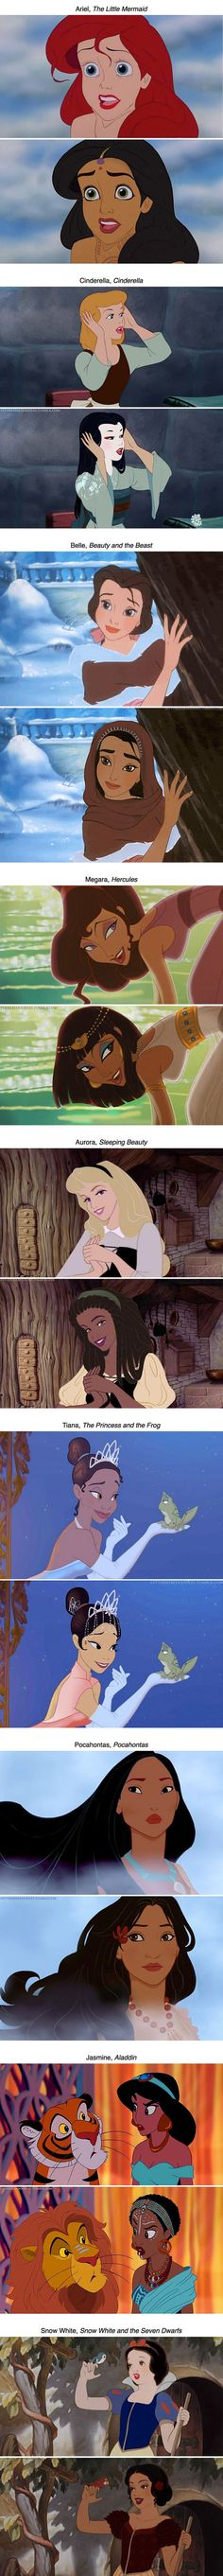 If Disney princesses were from different countries Belle, Megara, tiana, and jasmine are my faves.